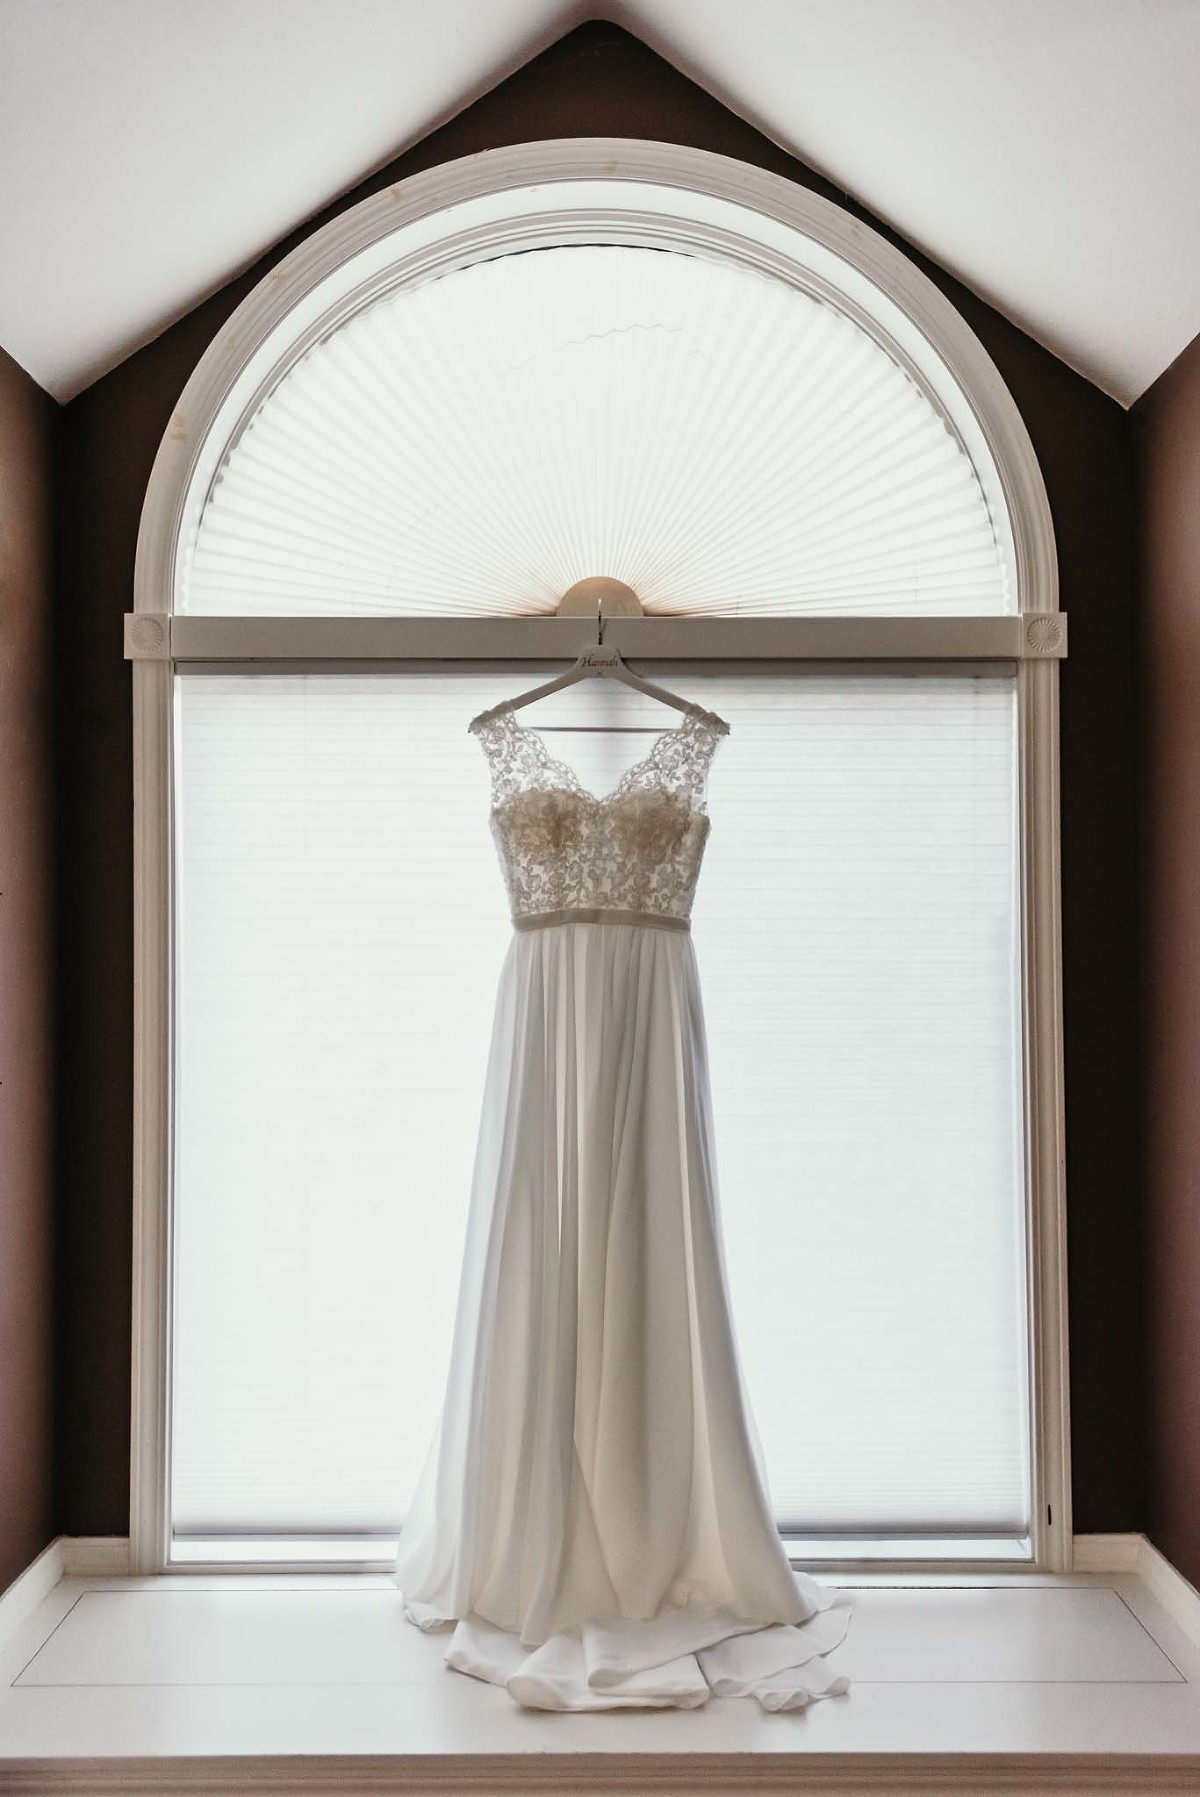 Wedding gown hanging in bride's bedroom window during fall wedding in Fort Wayne, Indiana by Kasey Wallace Photography